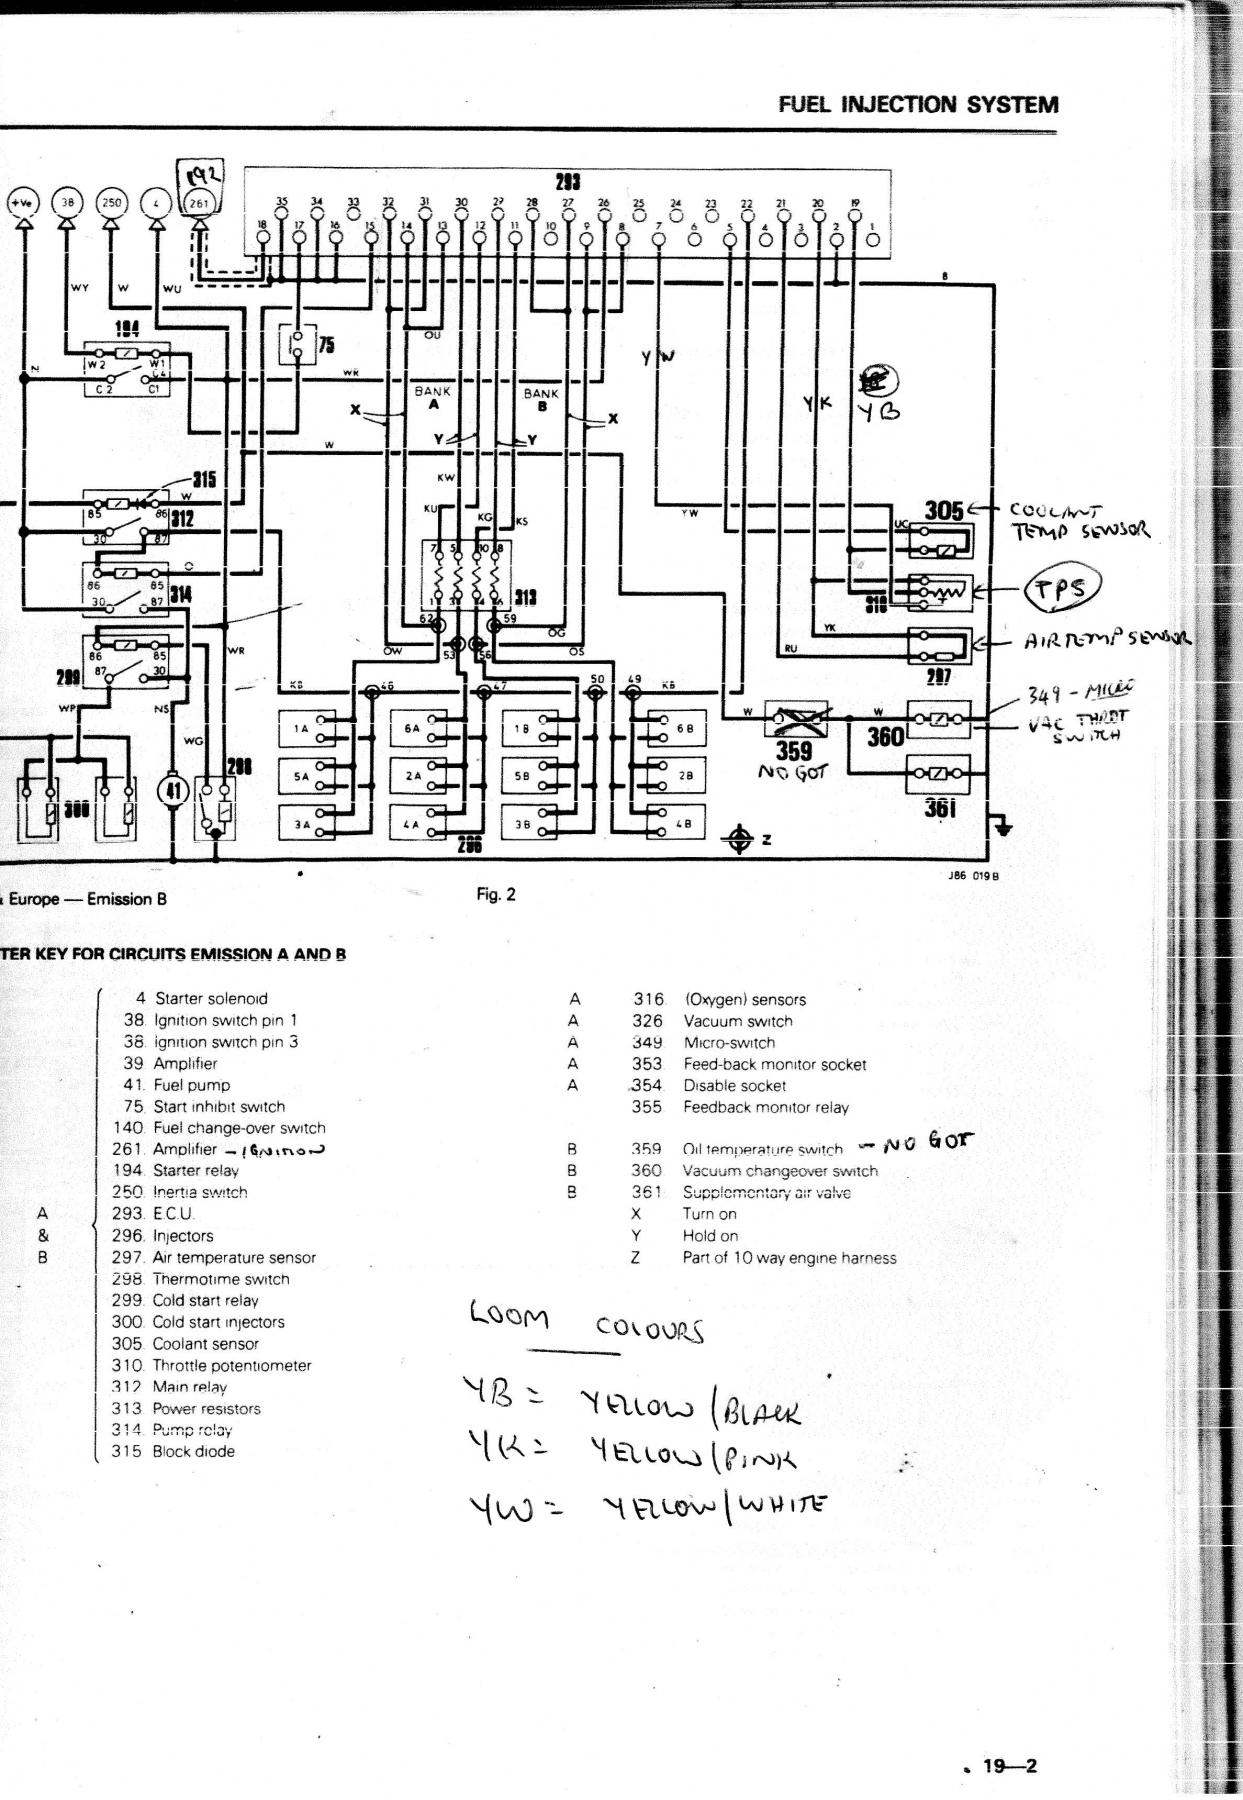 1988 Jaguar Xjs Wiring Diagram Schematic Diagrams Color Codes Example Electrical U2022 Chart